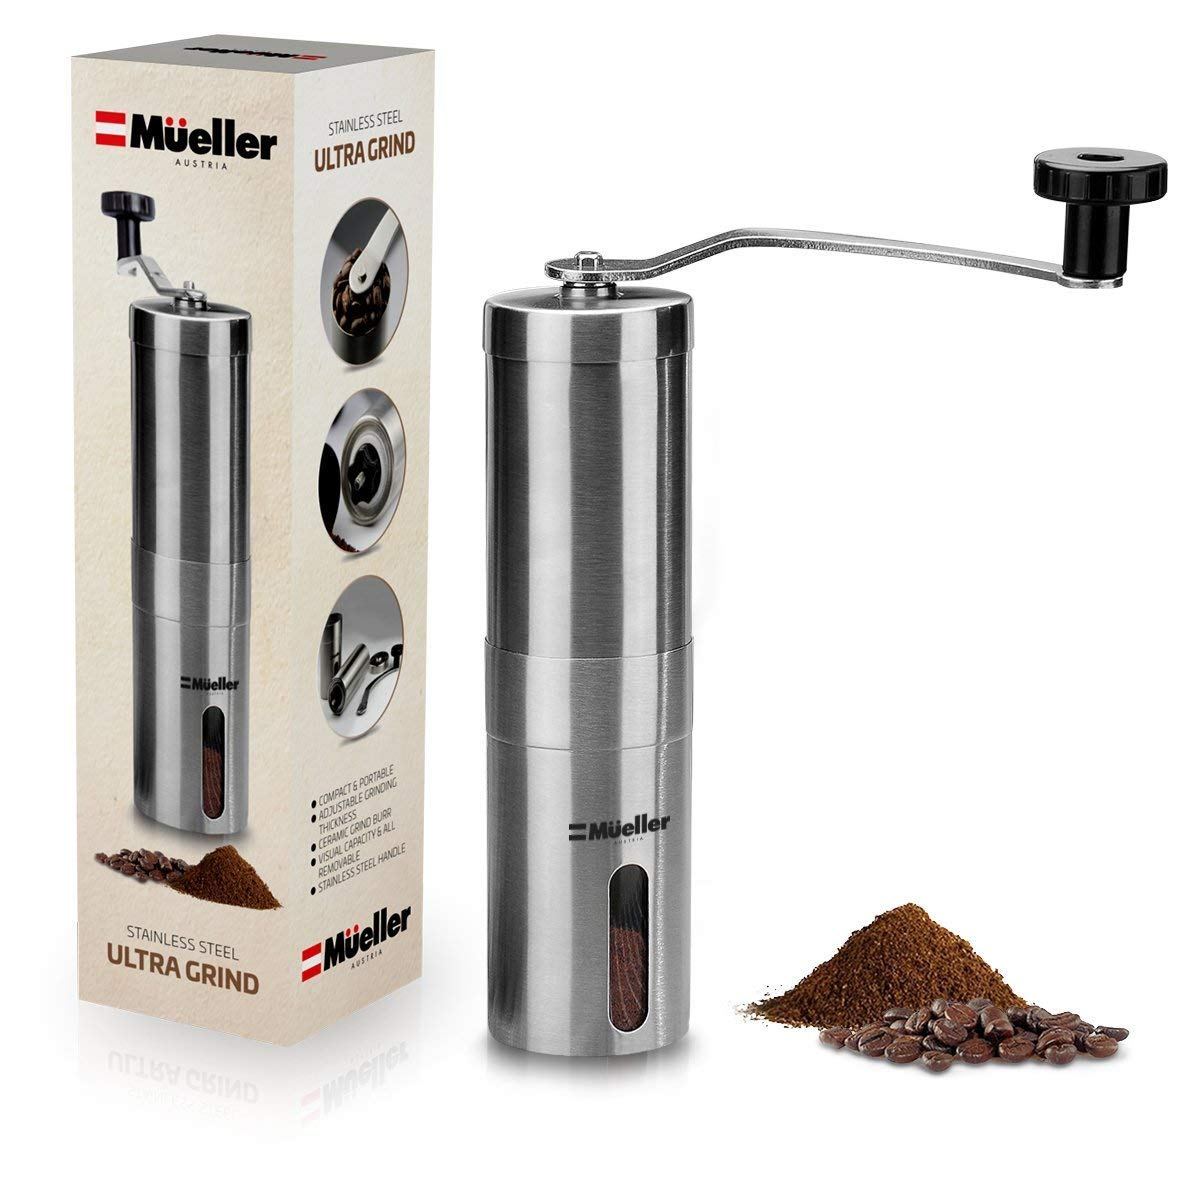 Mueller Ultra-Grind - Strongest and Heaviest Duty Portable Conical Burr Mill, Whole Bean Manual Coffee Grinder for French Press, Turkish, Handheld Mini, K Cup, Brushed Stainless Steel Mueller Austria